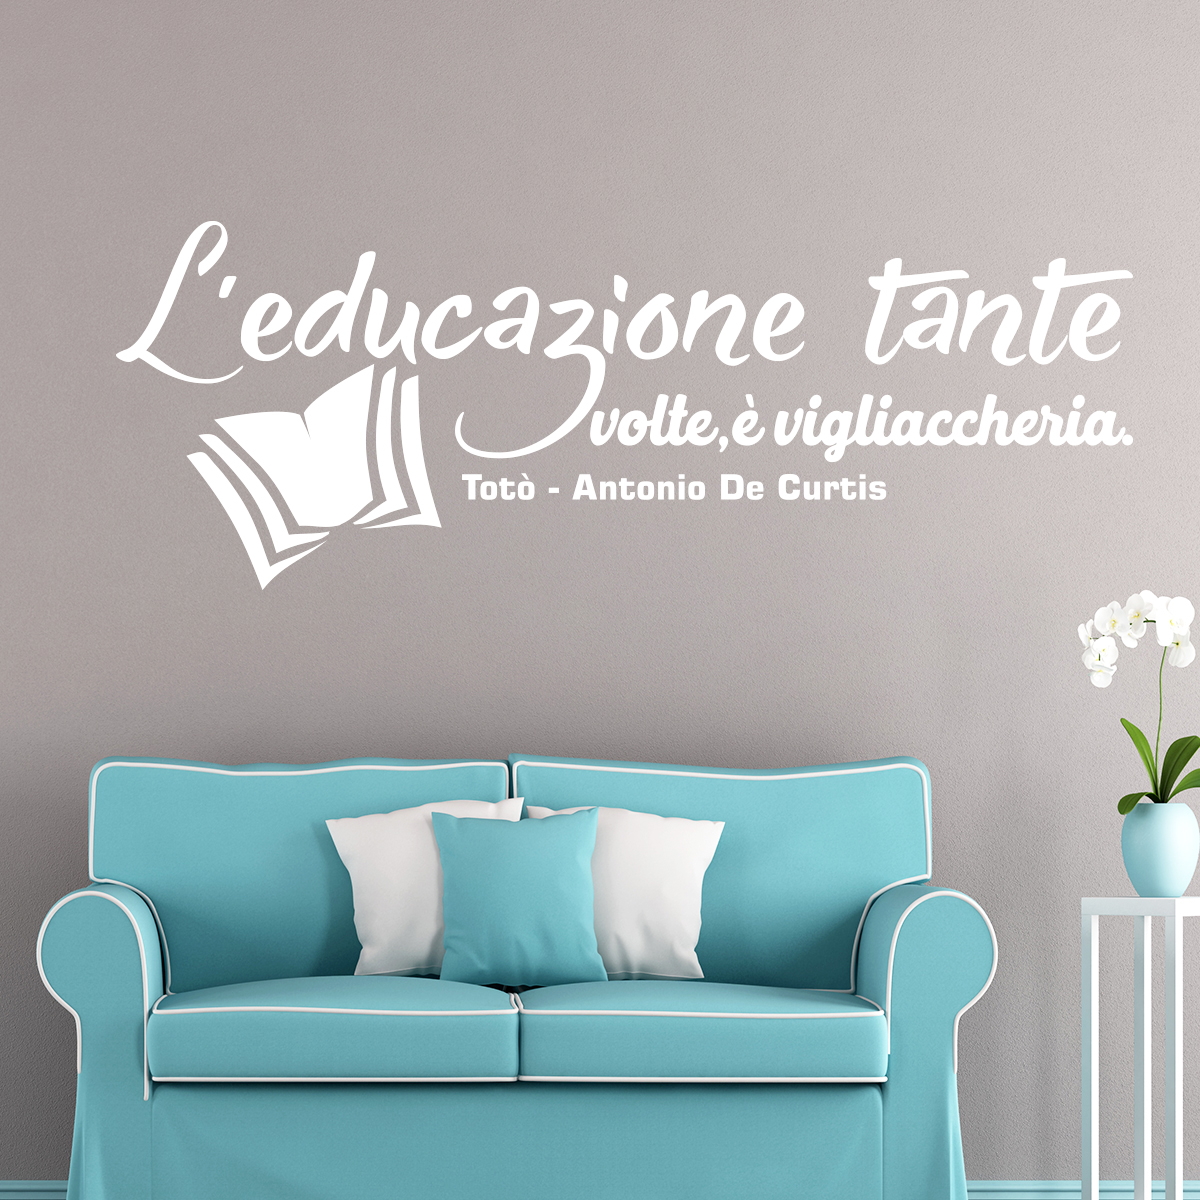 sticker citation l 39 educazione tante voltte tot. Black Bedroom Furniture Sets. Home Design Ideas